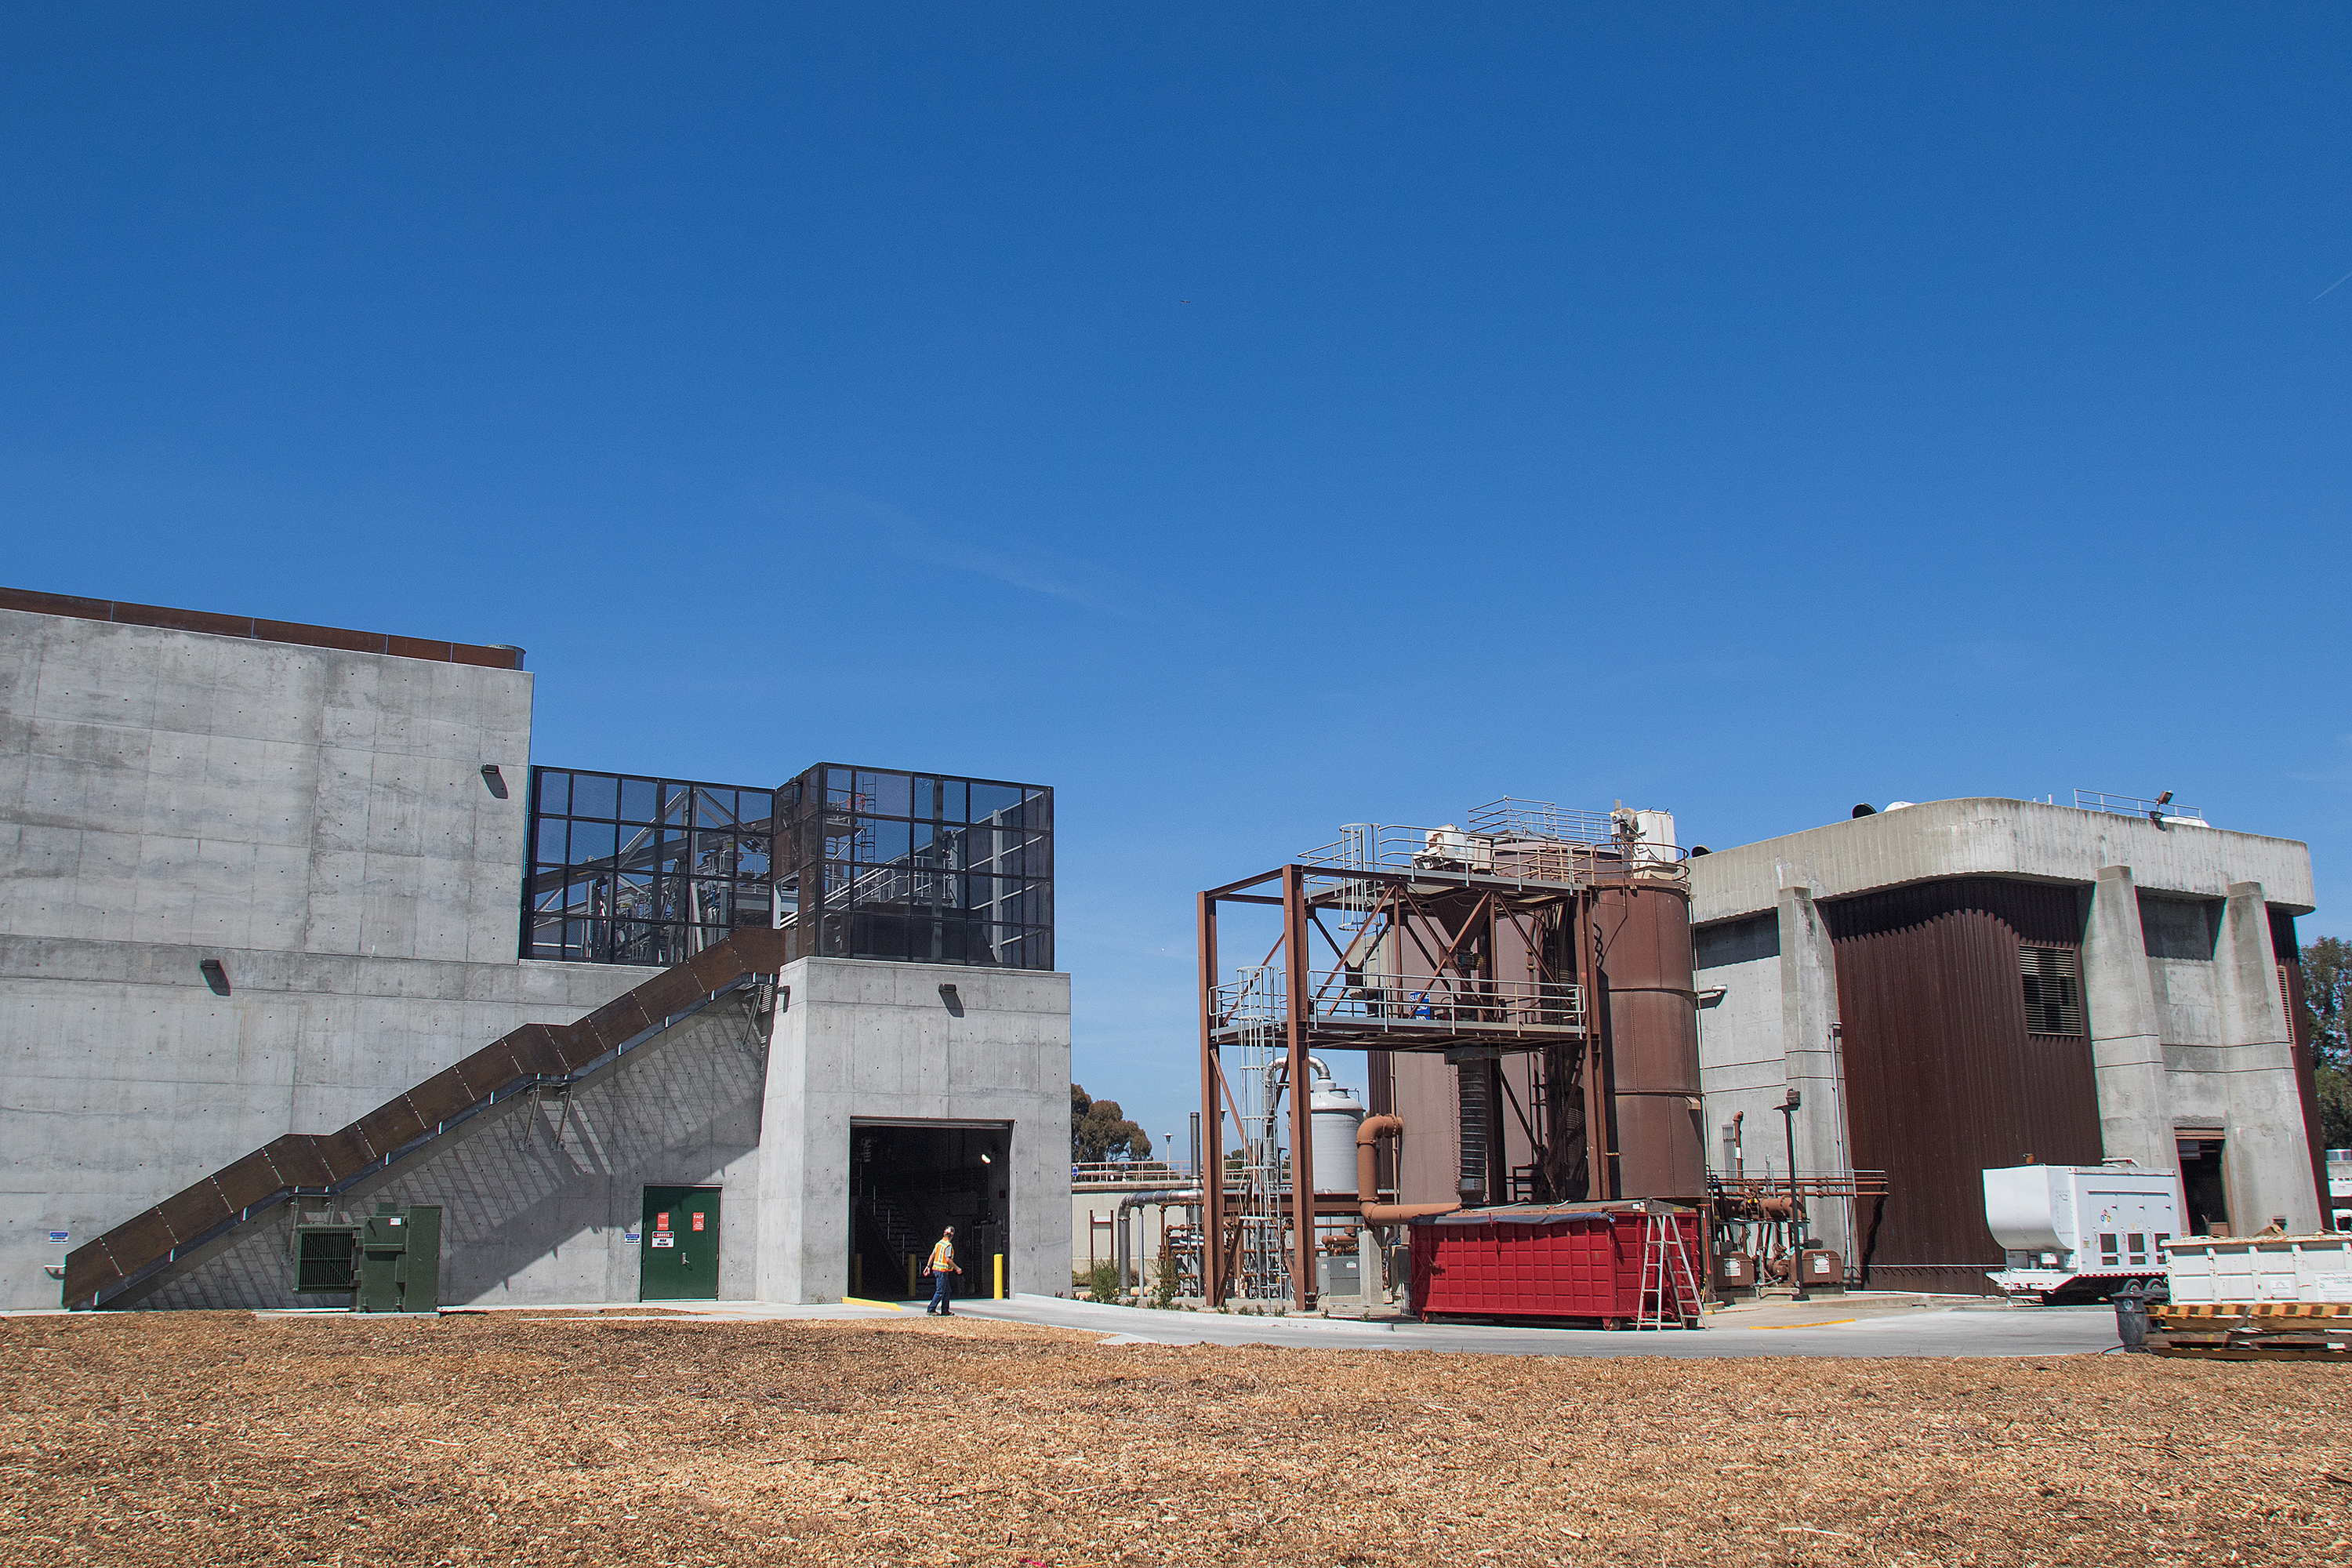 In June, the city of Palo Alto held a ribbon-cutting ceremony for its new sludge dewatering building, left, and retired the former incinerator building, right. File photo by Veronica Weber.